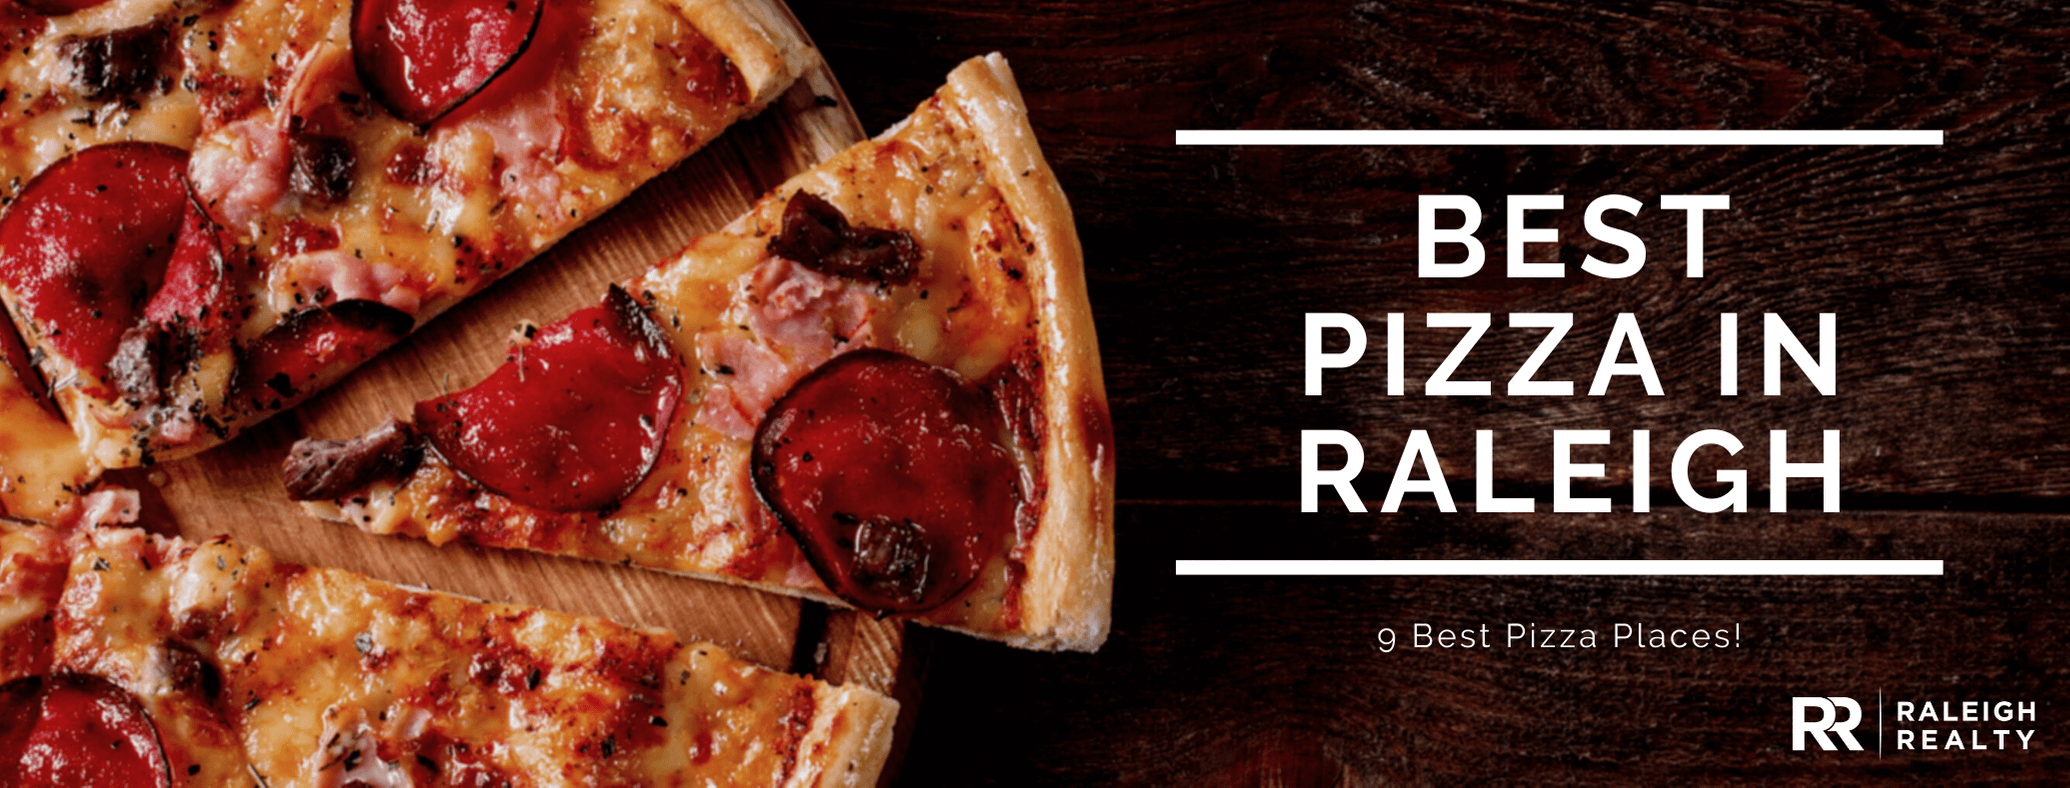 Where's the Best Pizza in Raleigh - 9 Best Places!